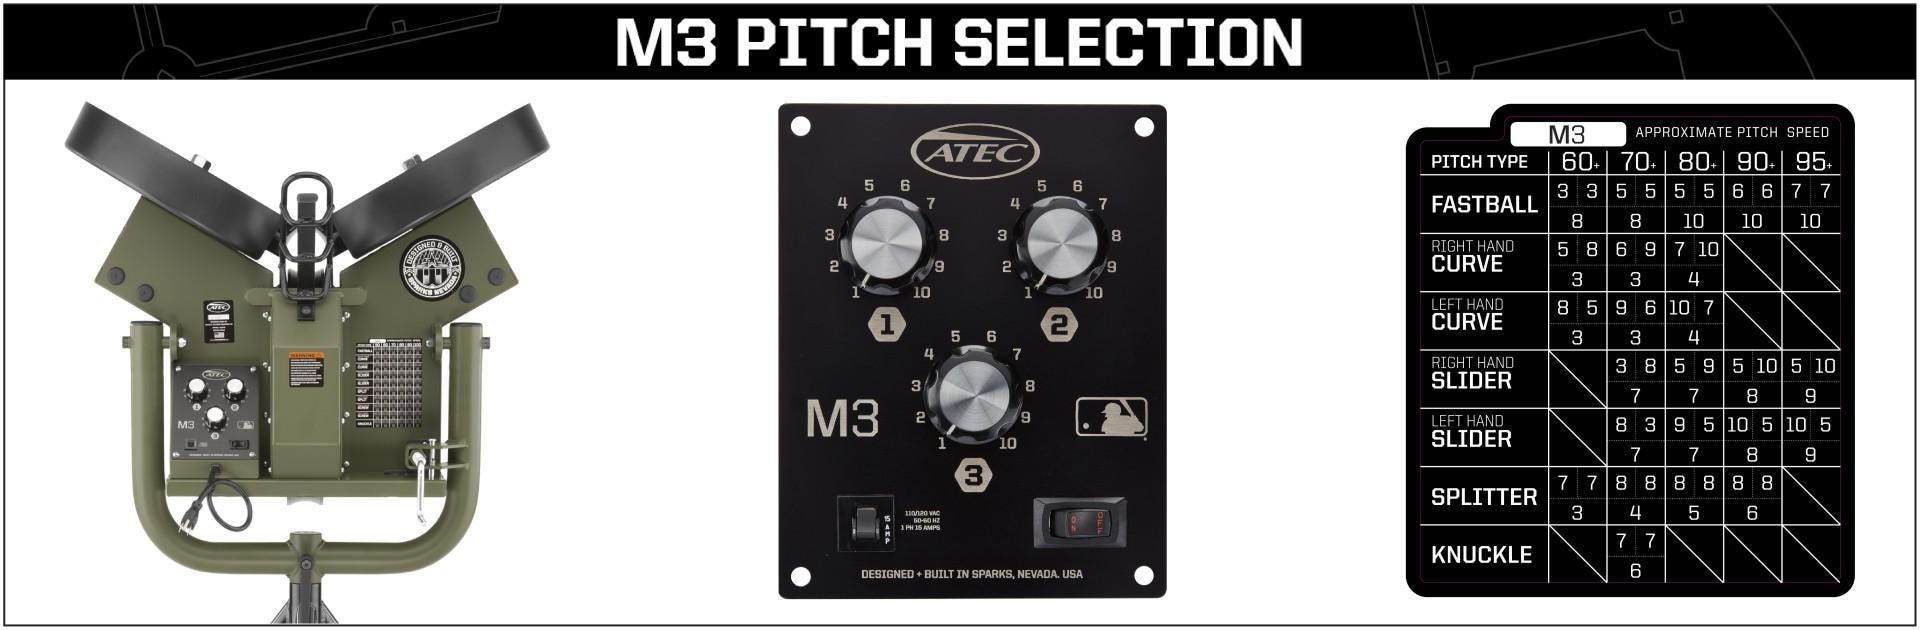 Pitches Thrown | M3 Baseball Machine | ATEC